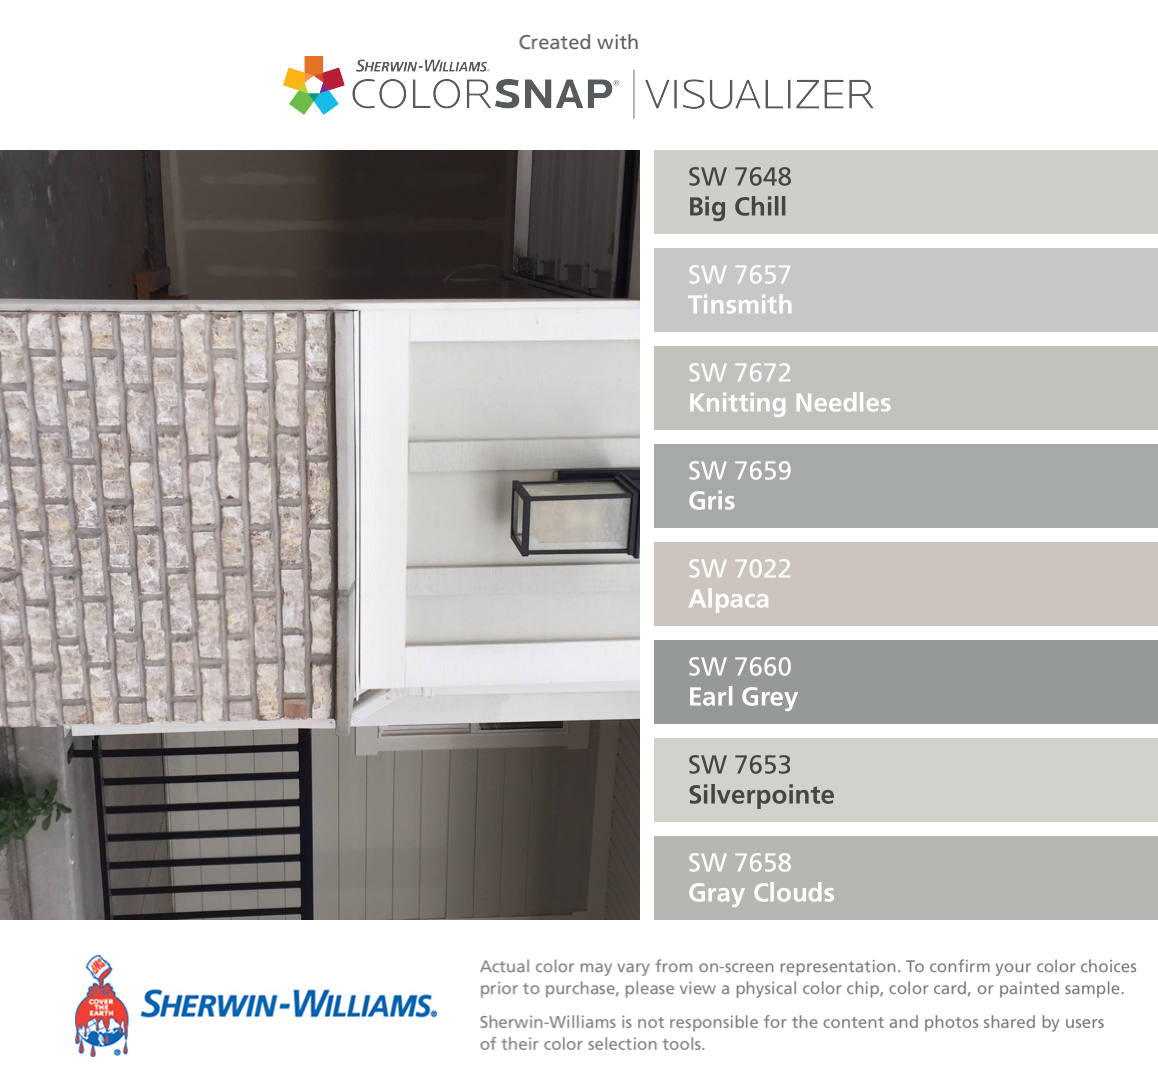 B Magnolia Bay Brick With Gray Mortar And Coordinating Colors Colorsnap Visualizer For Iphone By Sherwin Williams Chill Sw 7648